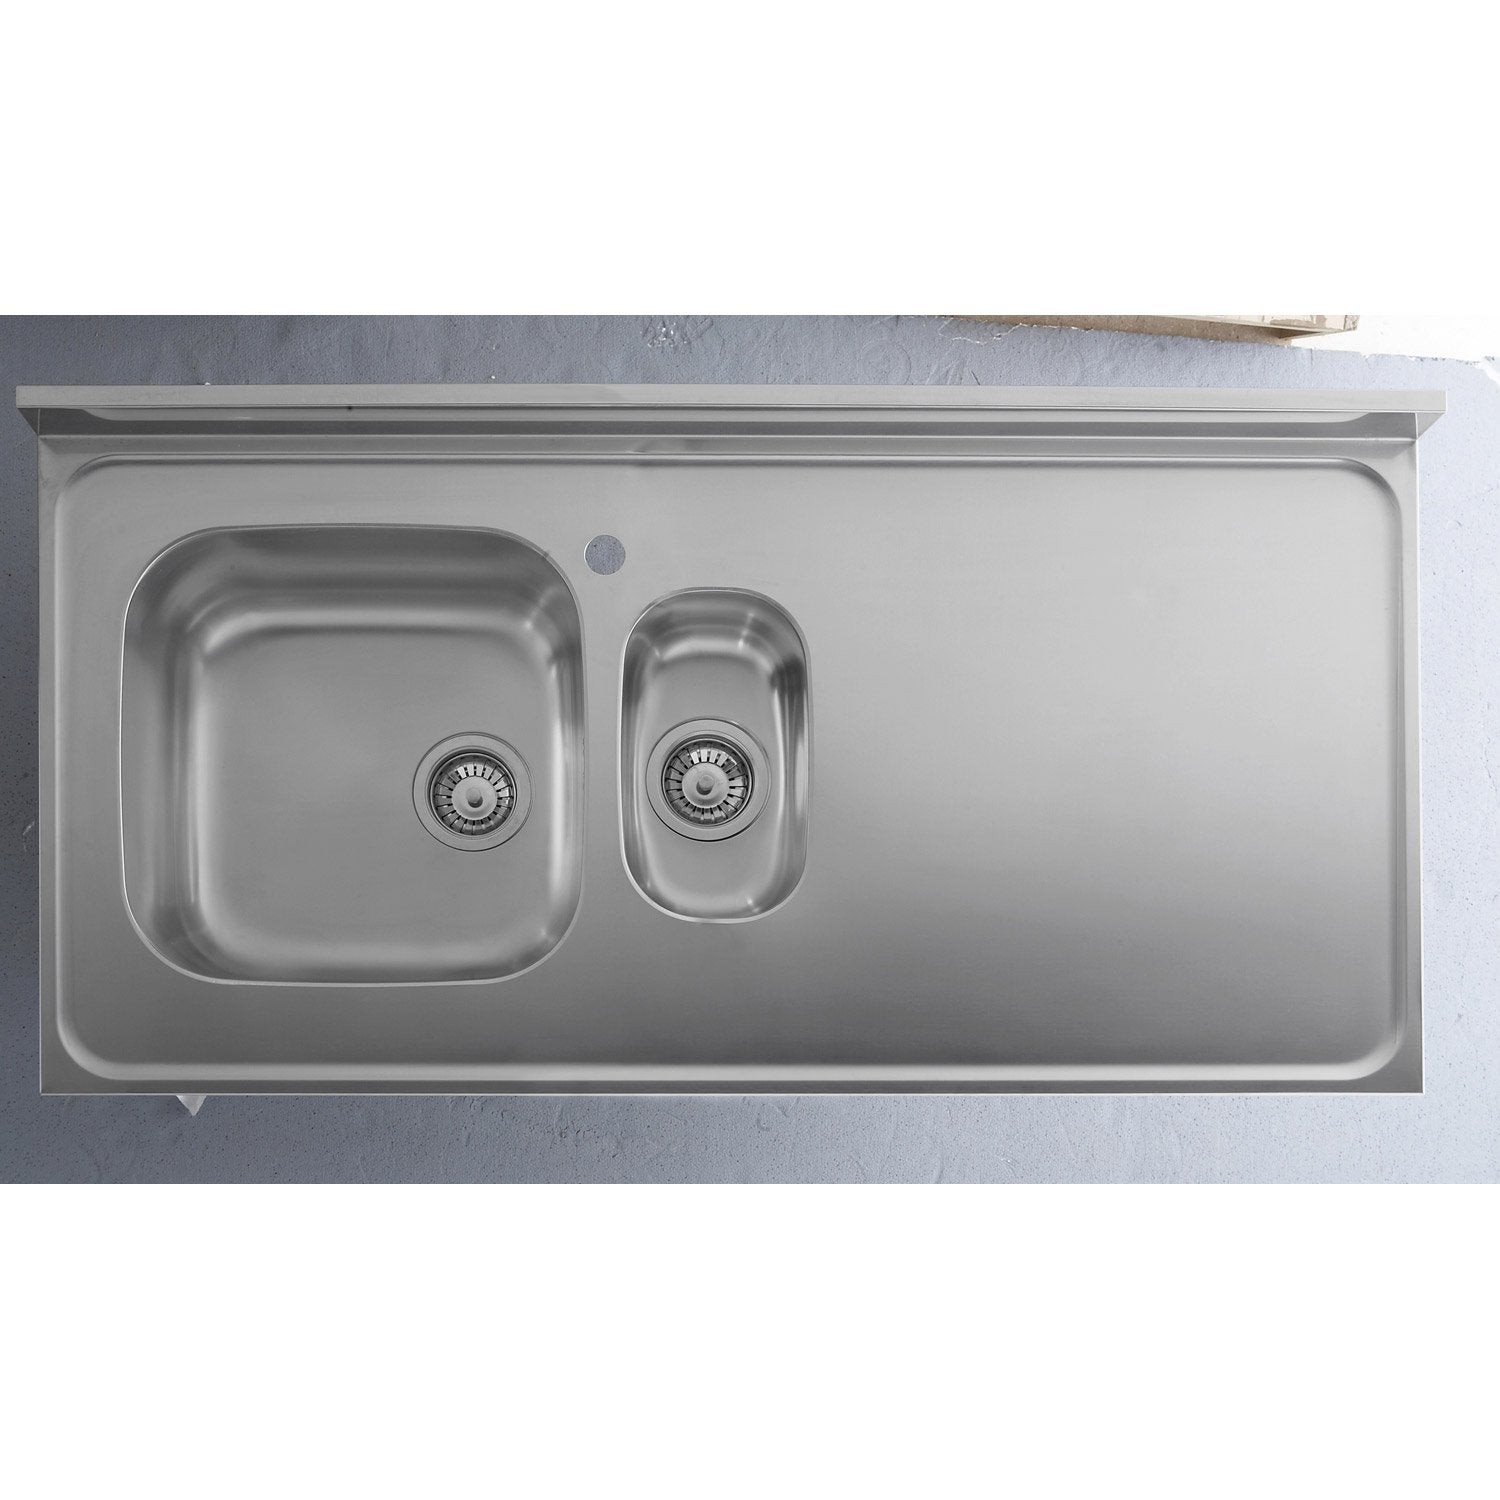 Plan Evier Inox Brillant L 120 X P 60 Cm Ep 42 Mm Leroy Merlin